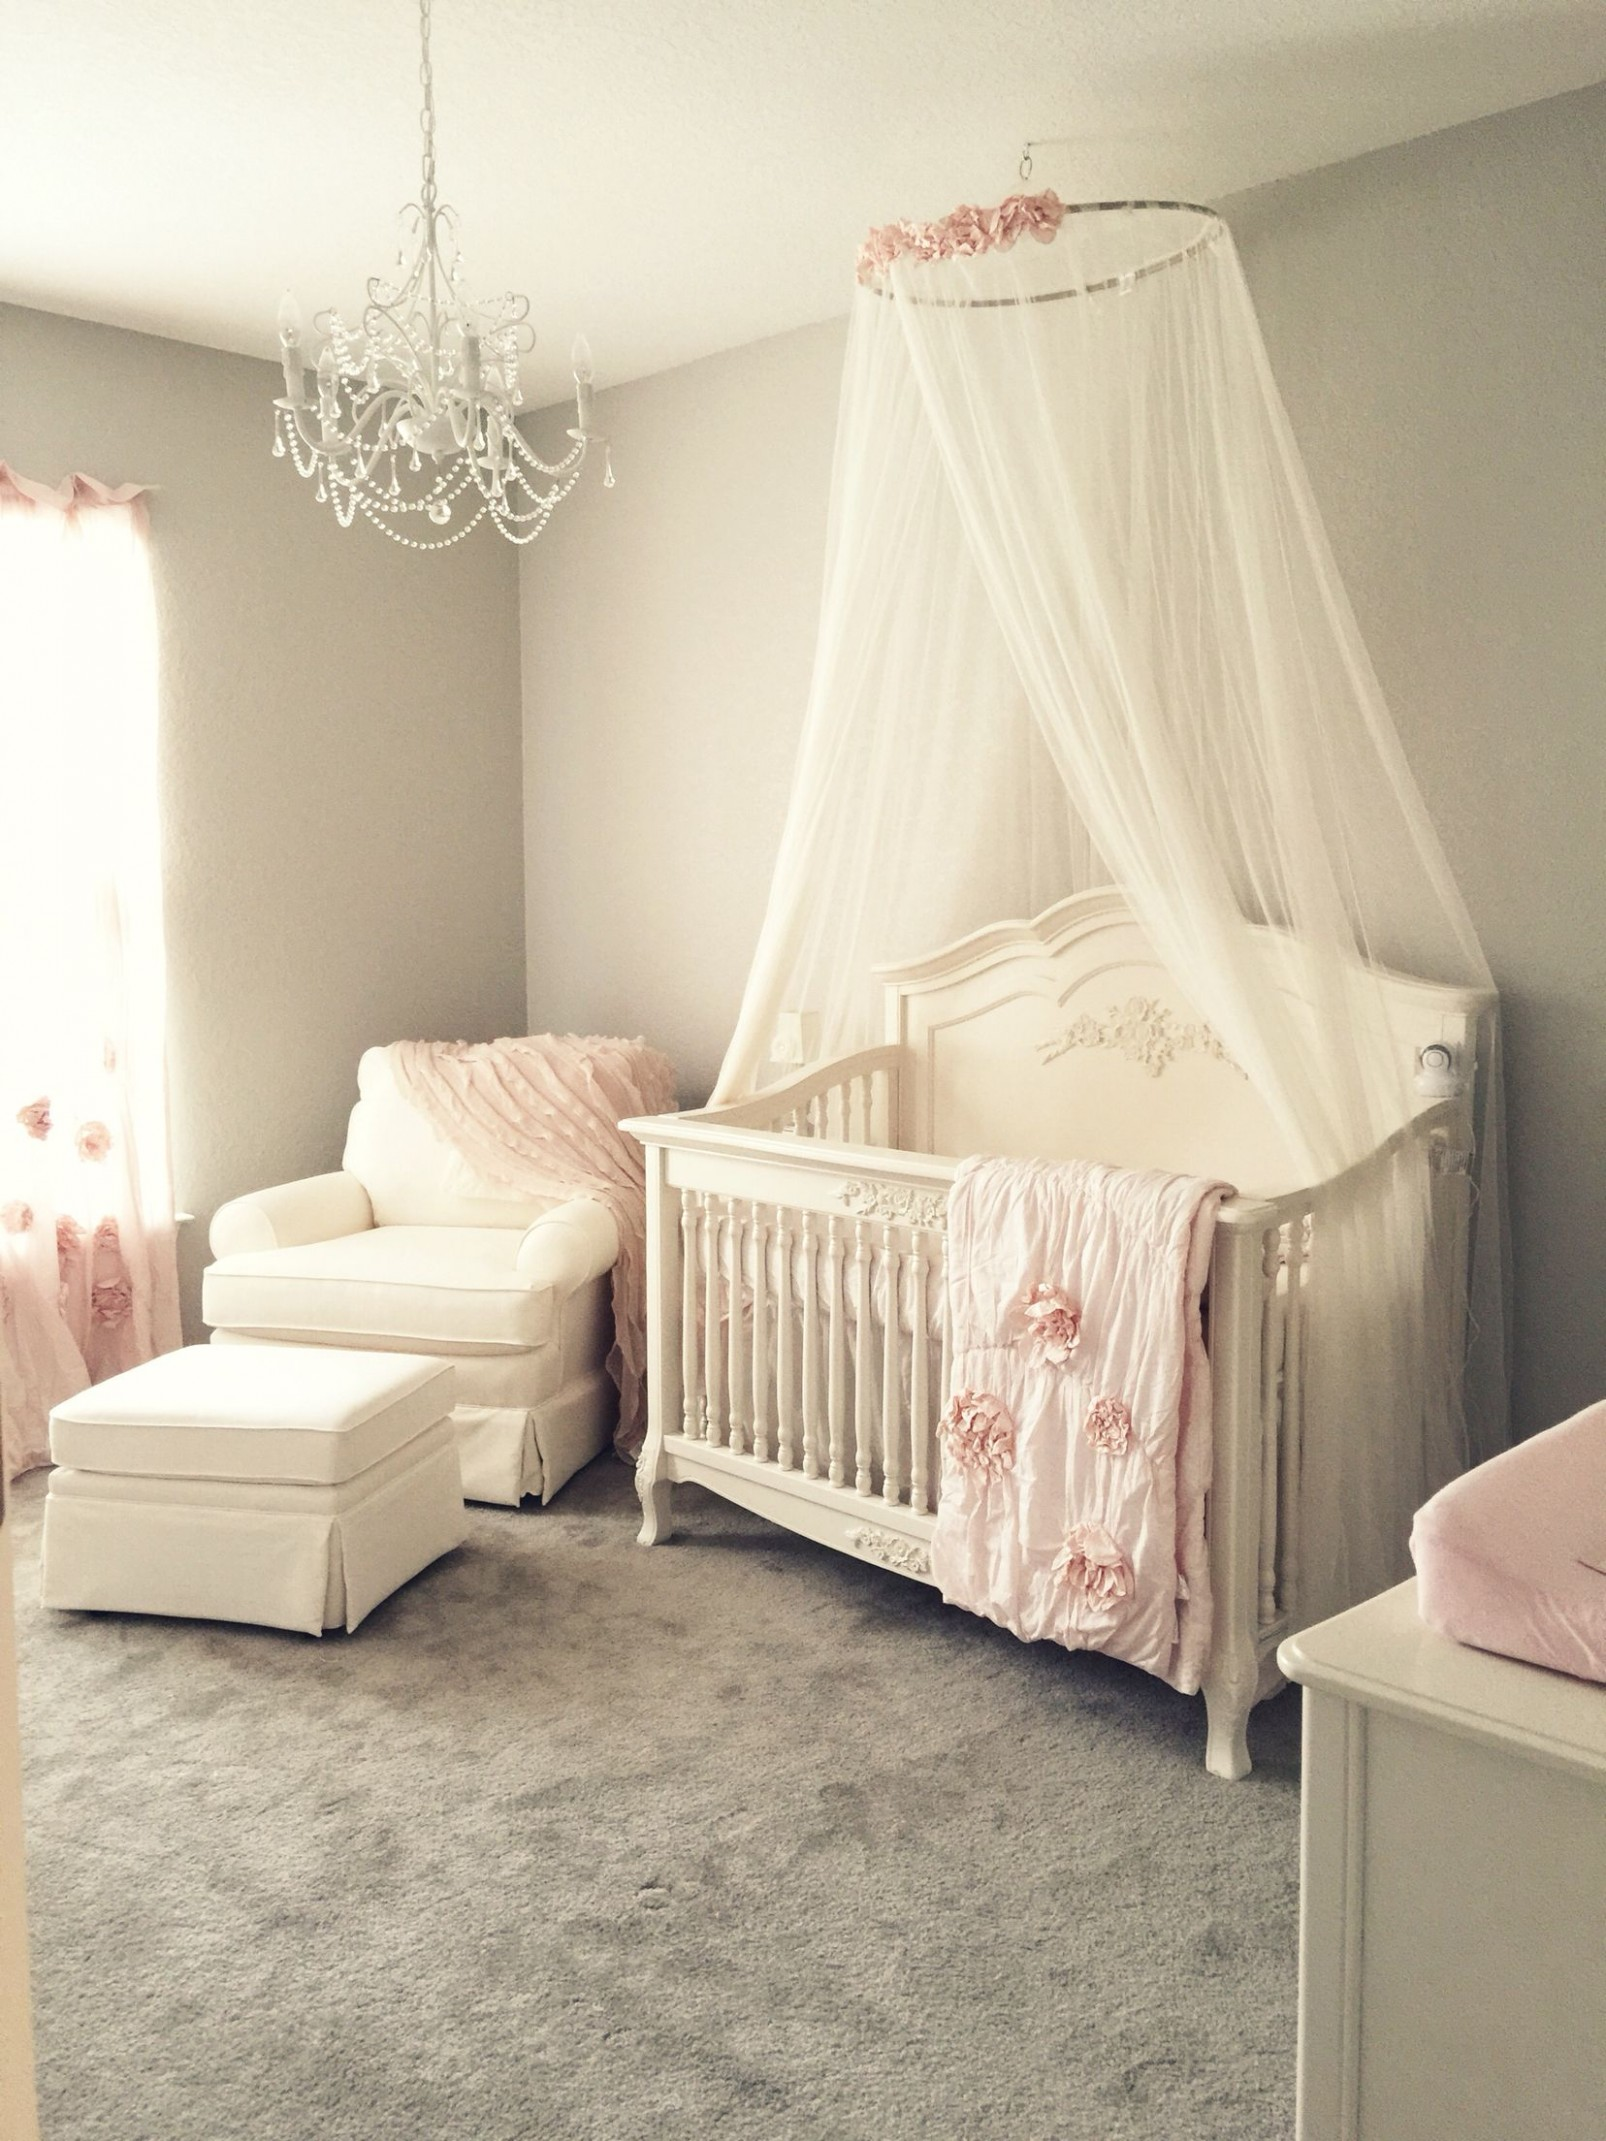 Girly pink blush nursery with chandelier, ivory rocker and glider  - Baby Room Chandelier